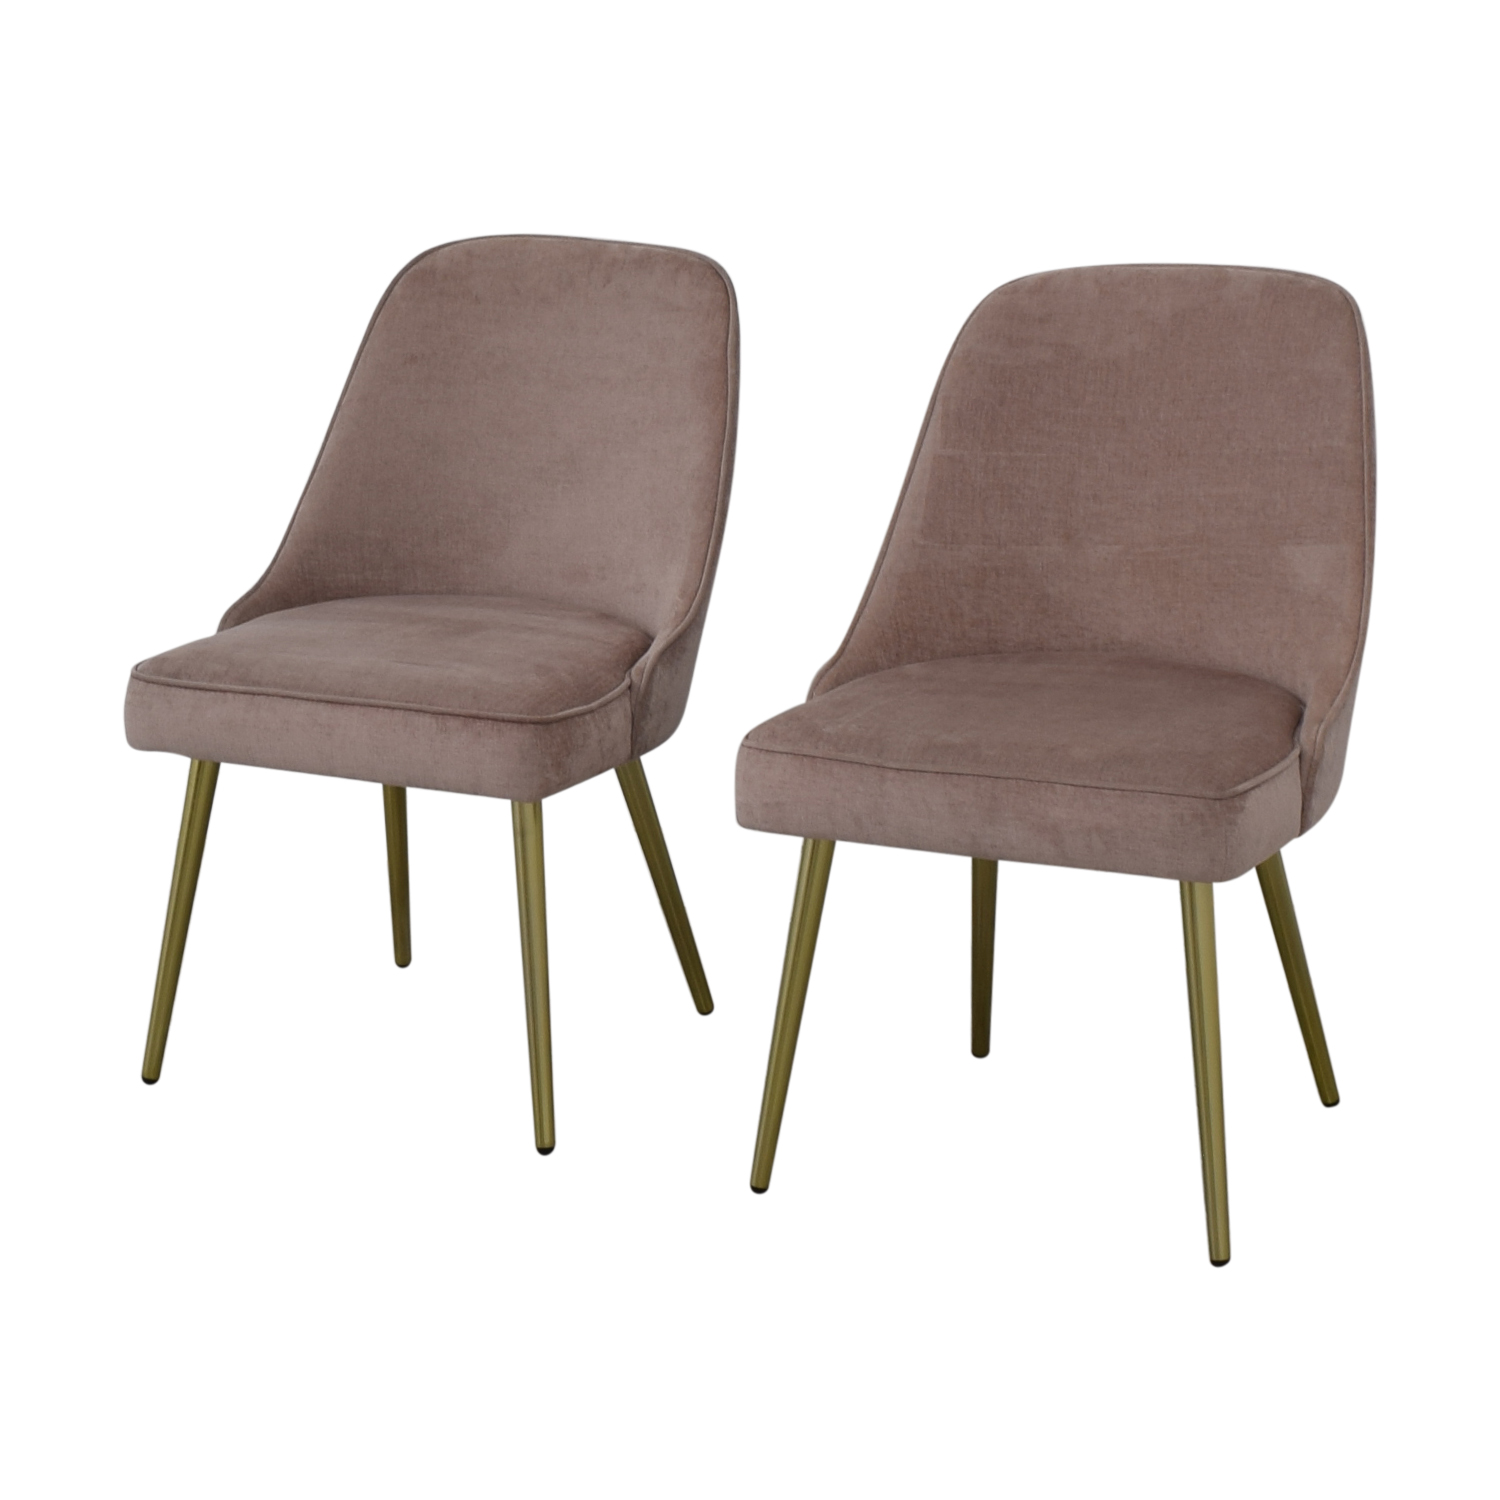 shop West Elm Mid-Century Upholstered Chairs Worn Velvet Light Pink West Elm Dining Chairs